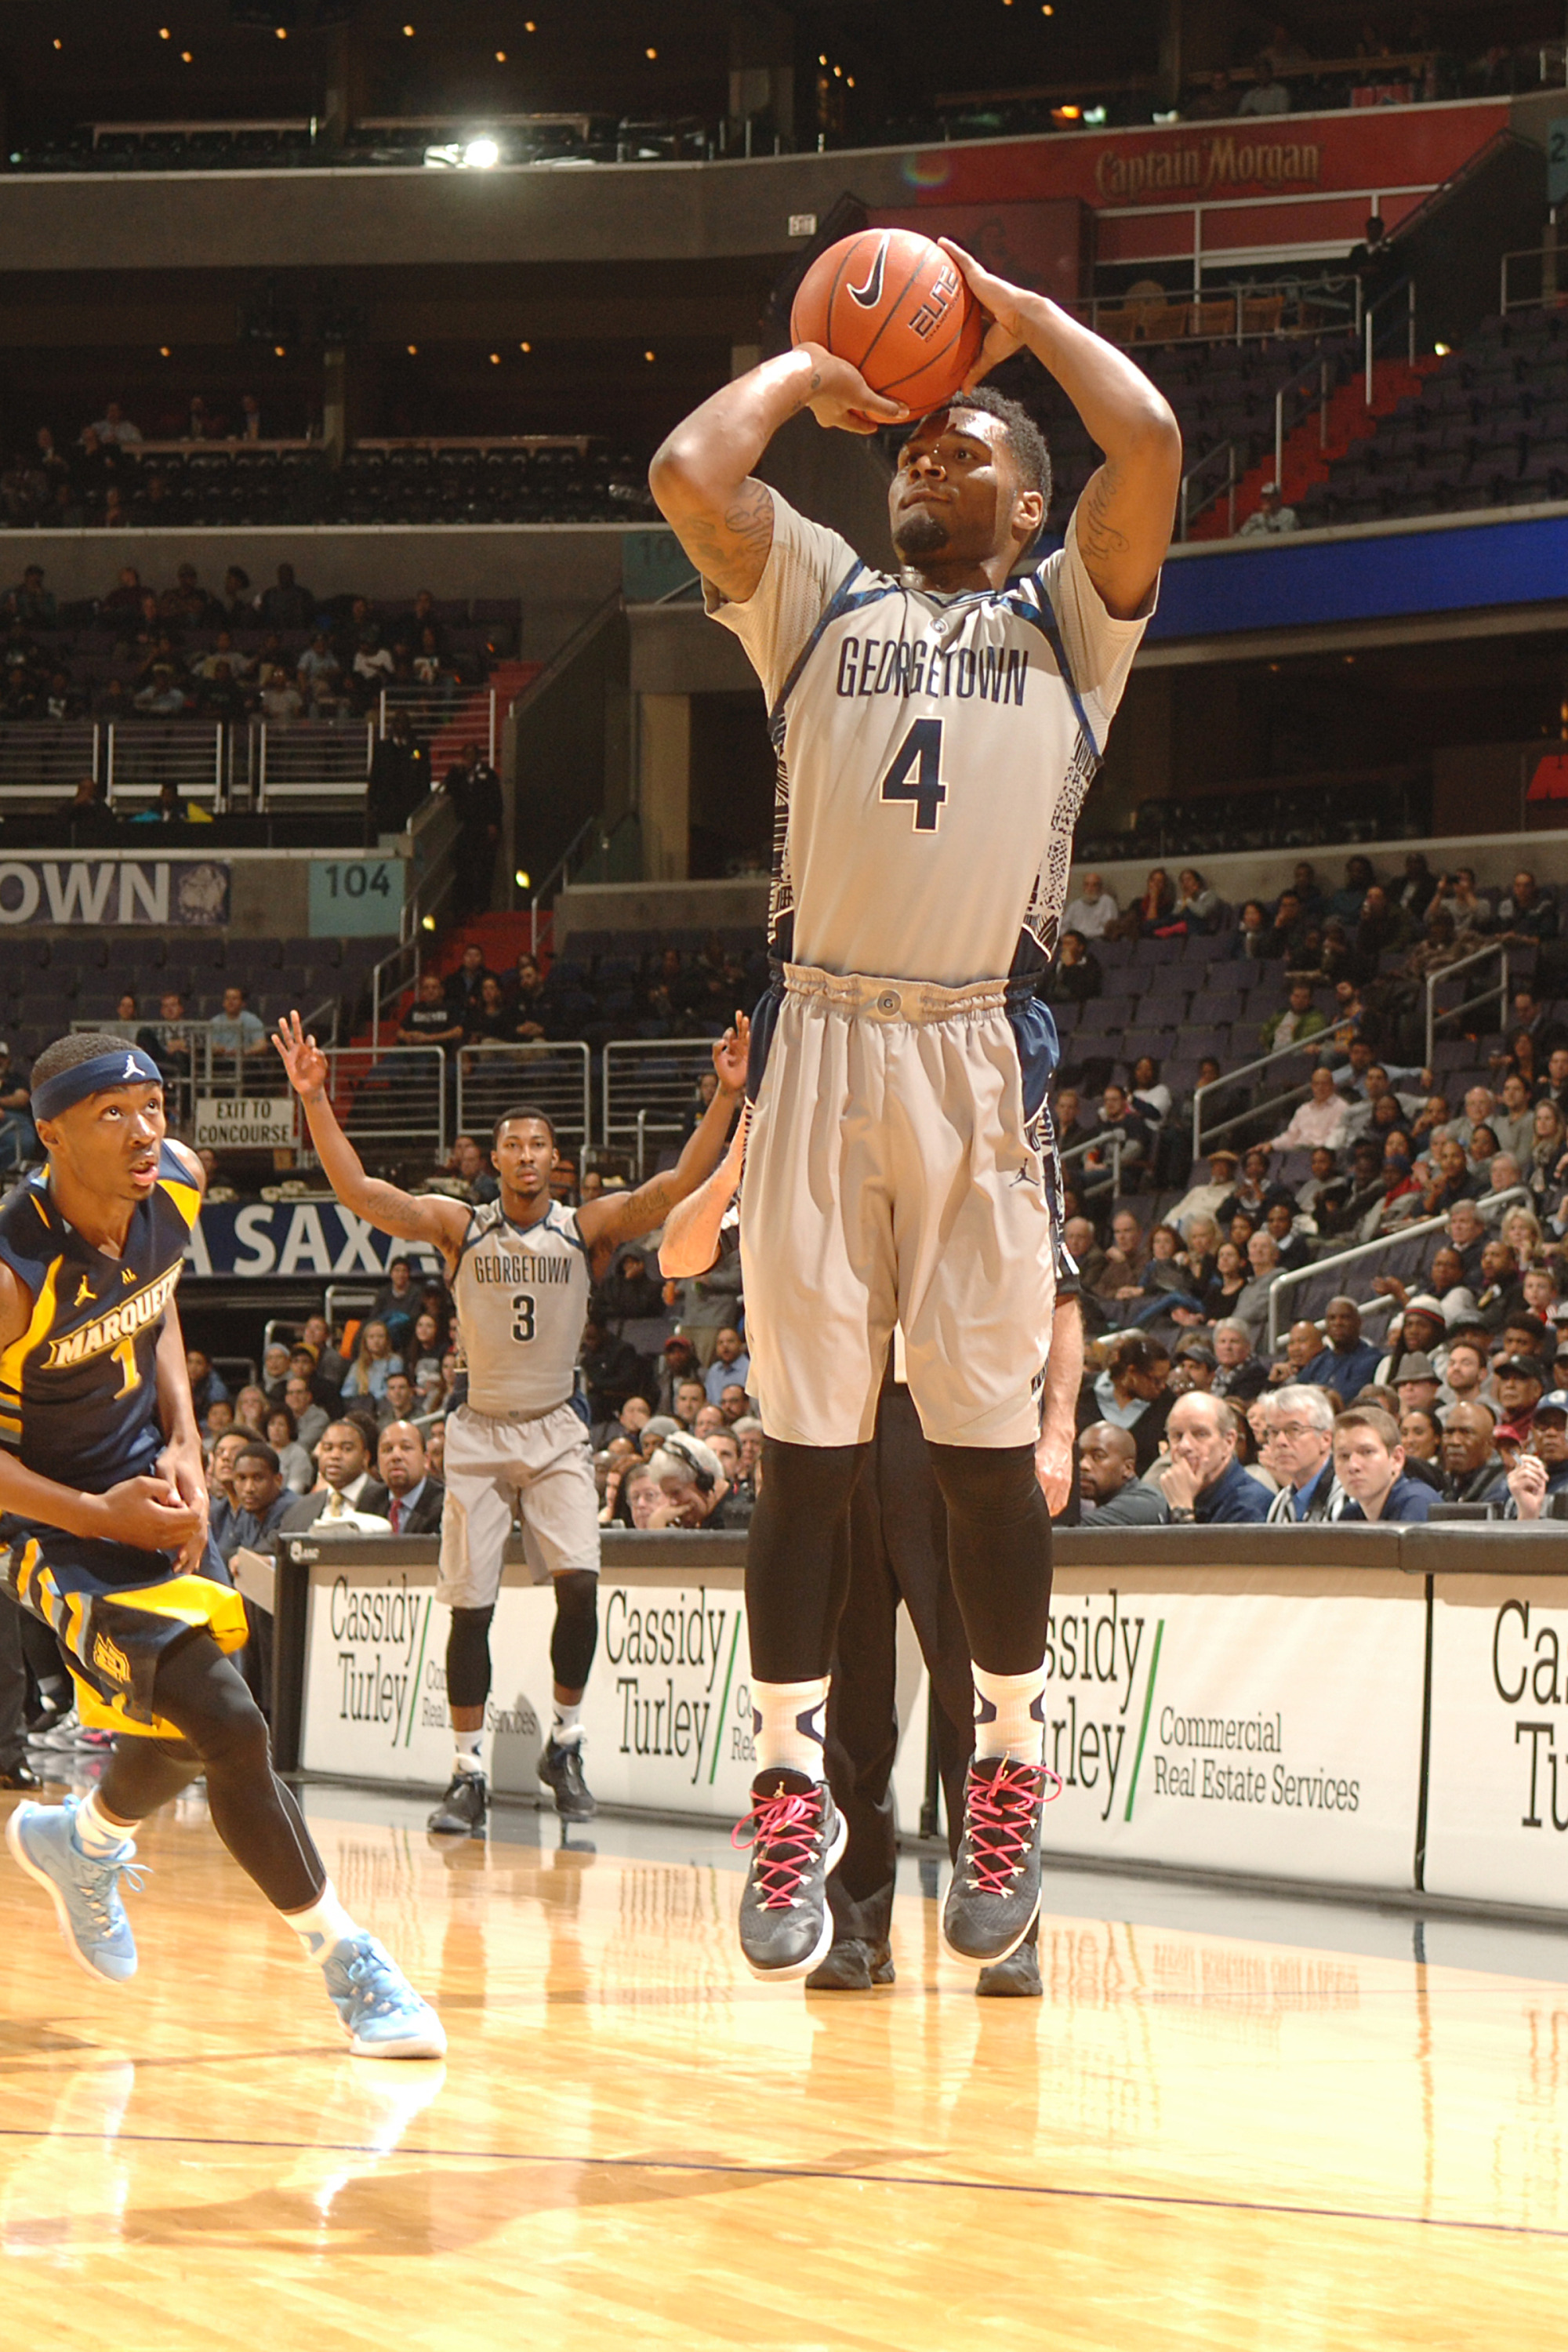 Georgetown lost to Providence, 60-57, on Saturday.